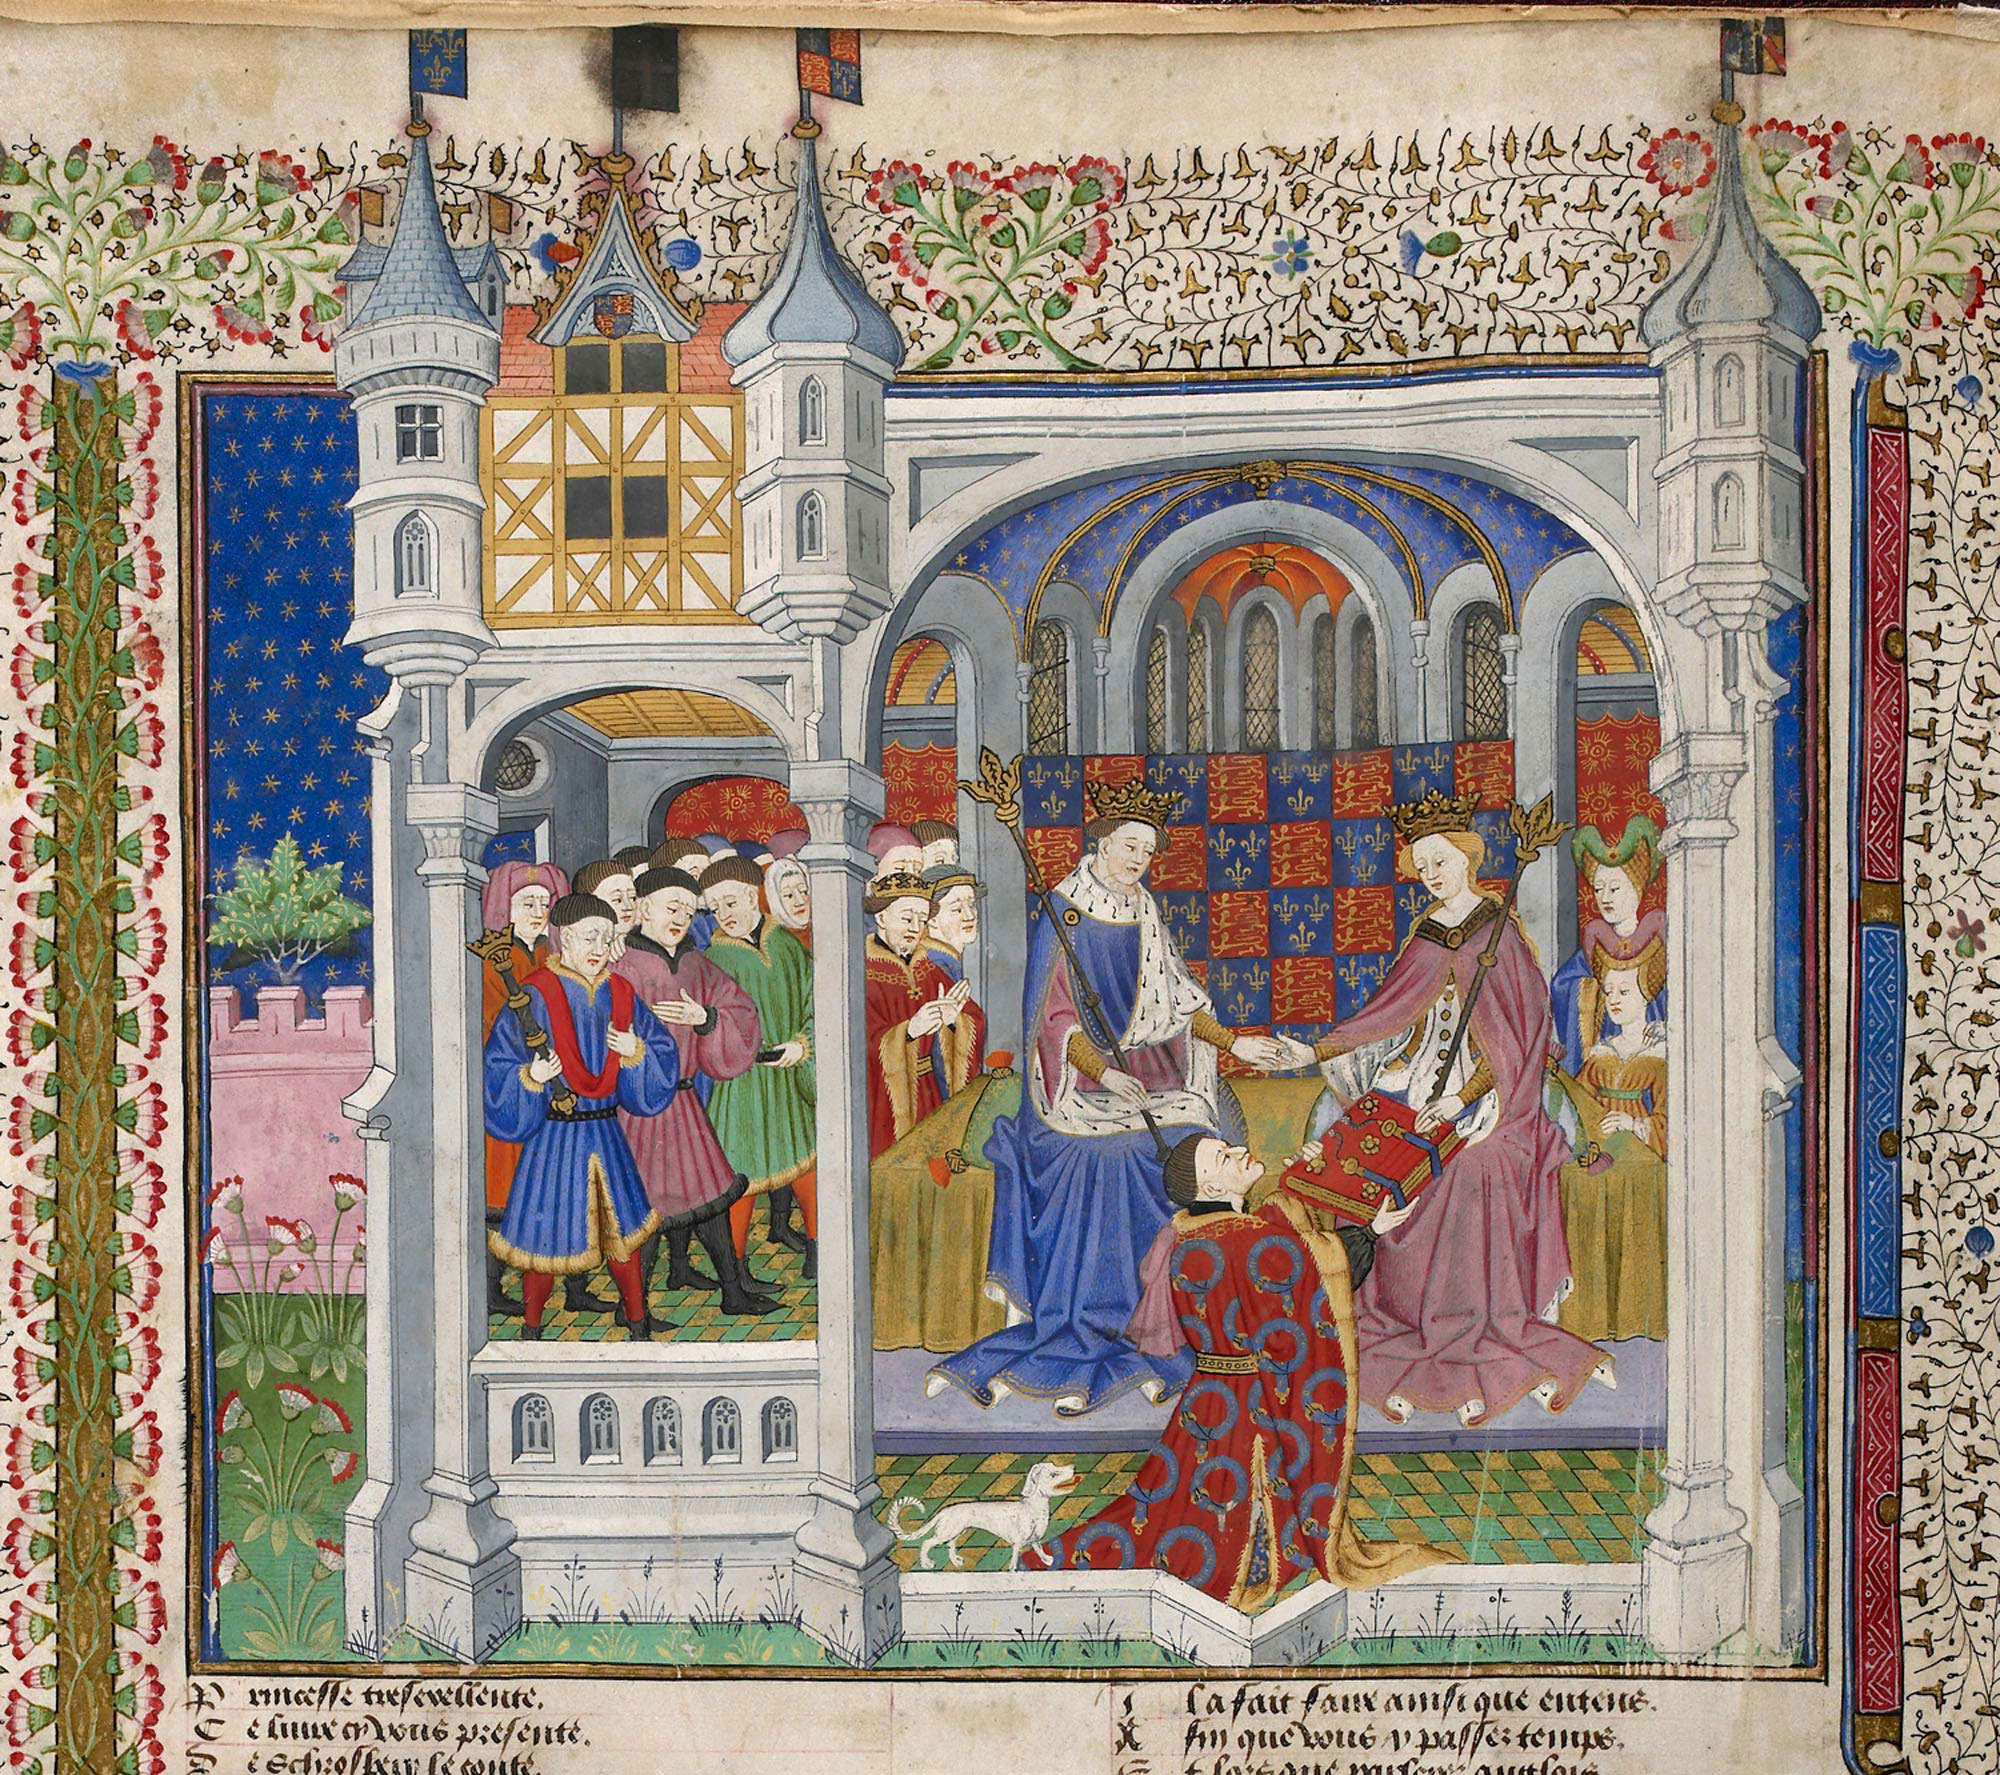 Margaret of Anjou in the Talbot Shrewsbury book